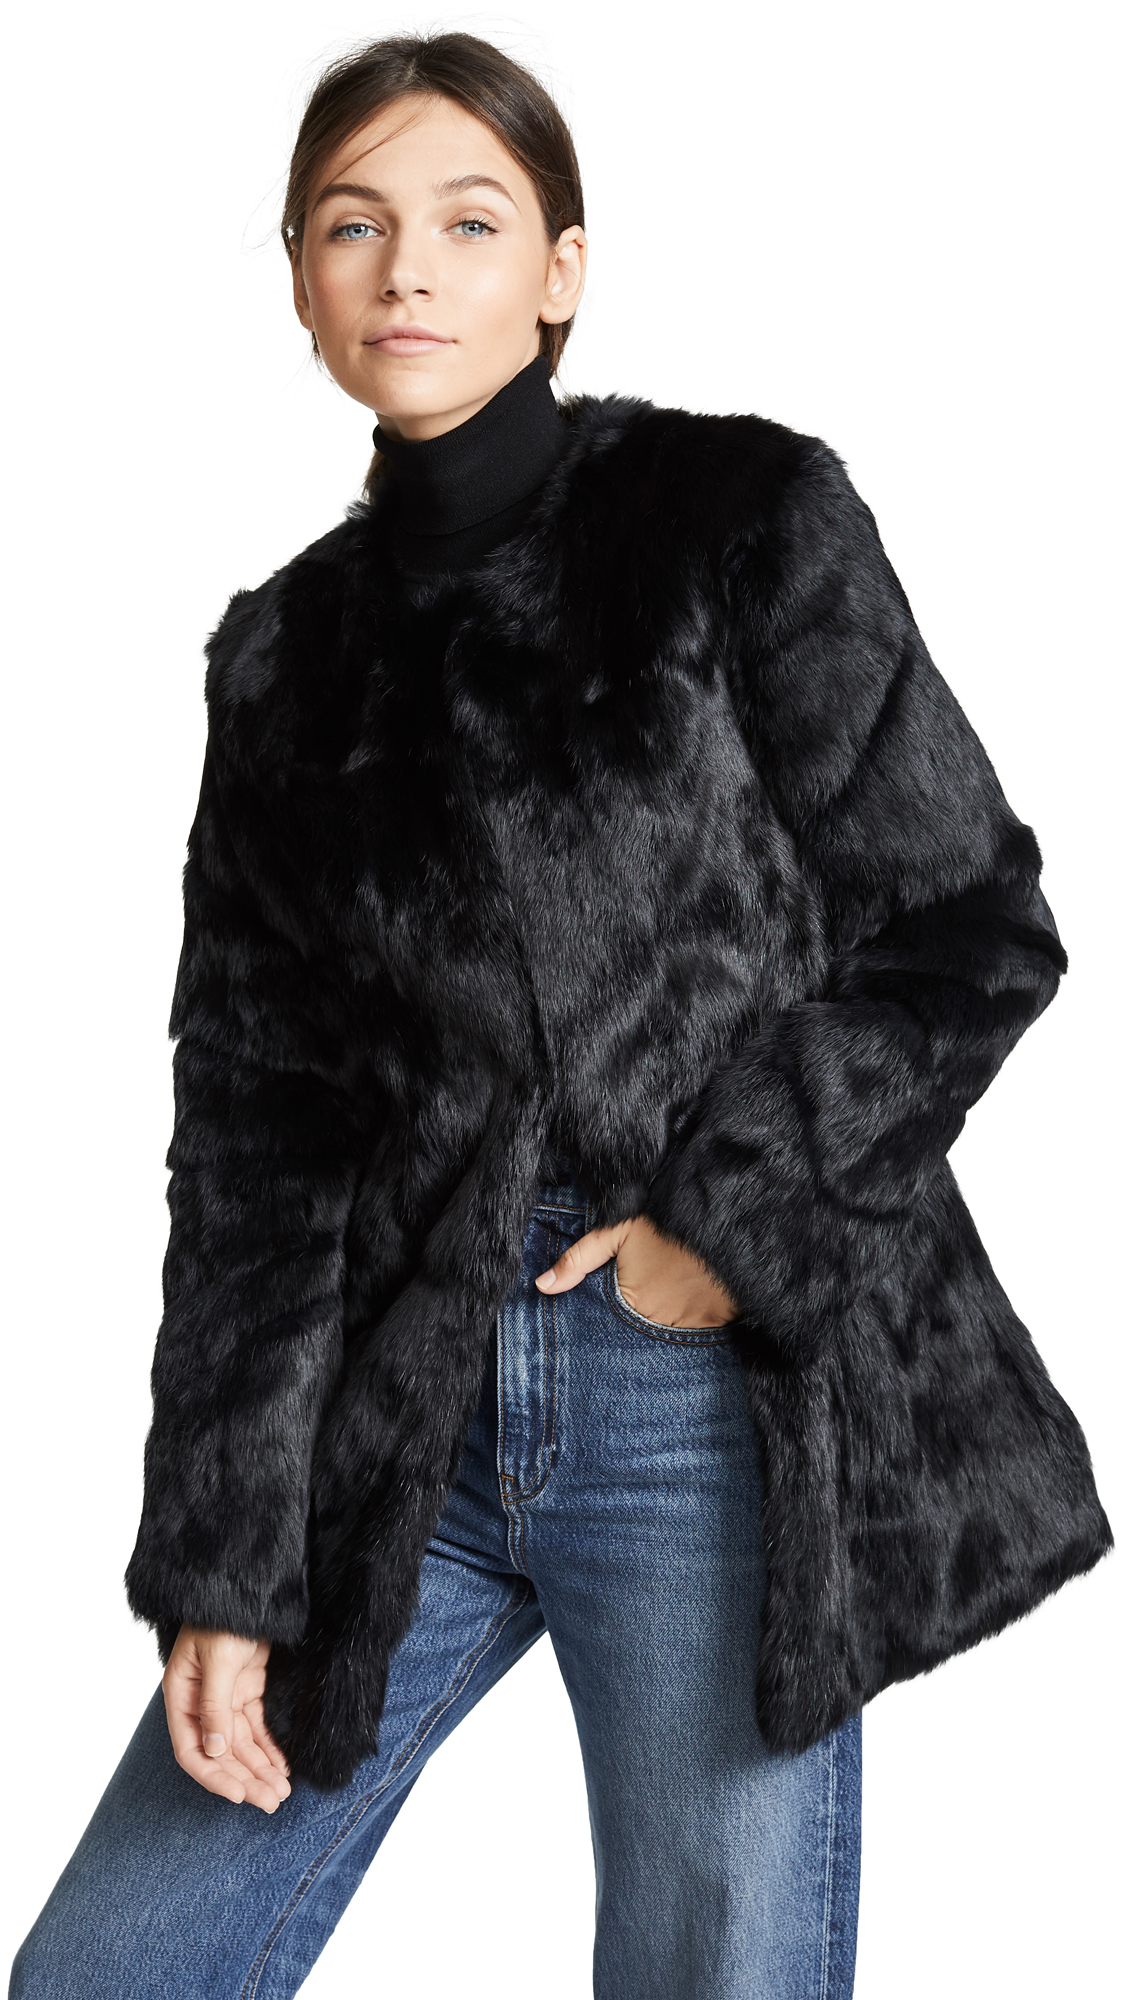 H Brand Alyssa Rabbit Fur Coat